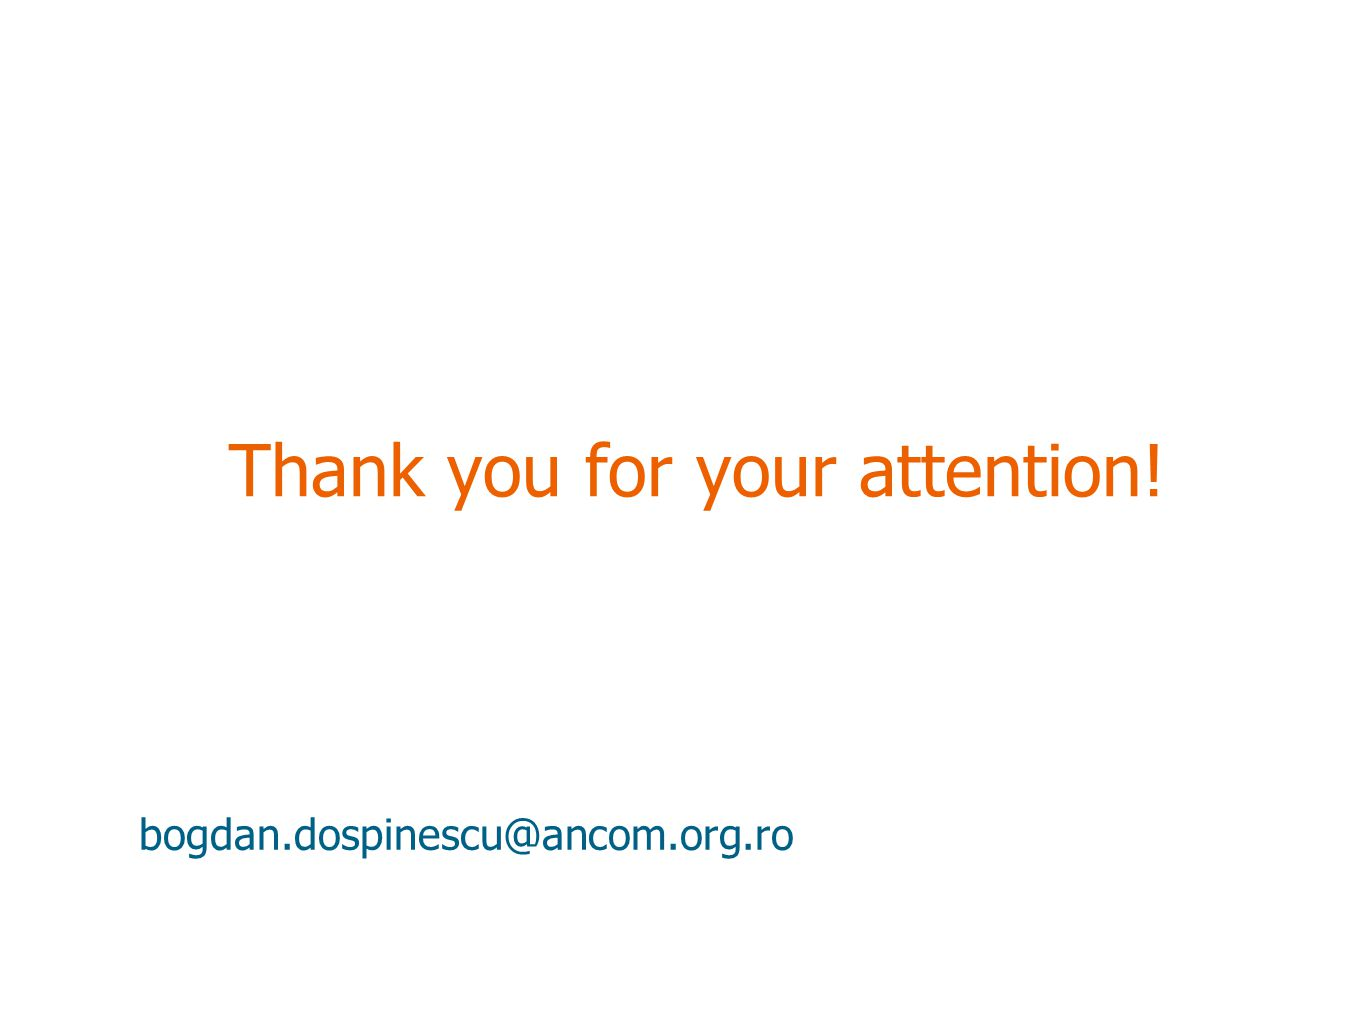 Thank you for your attention! bogdan.dospinescu@ancom.org.ro